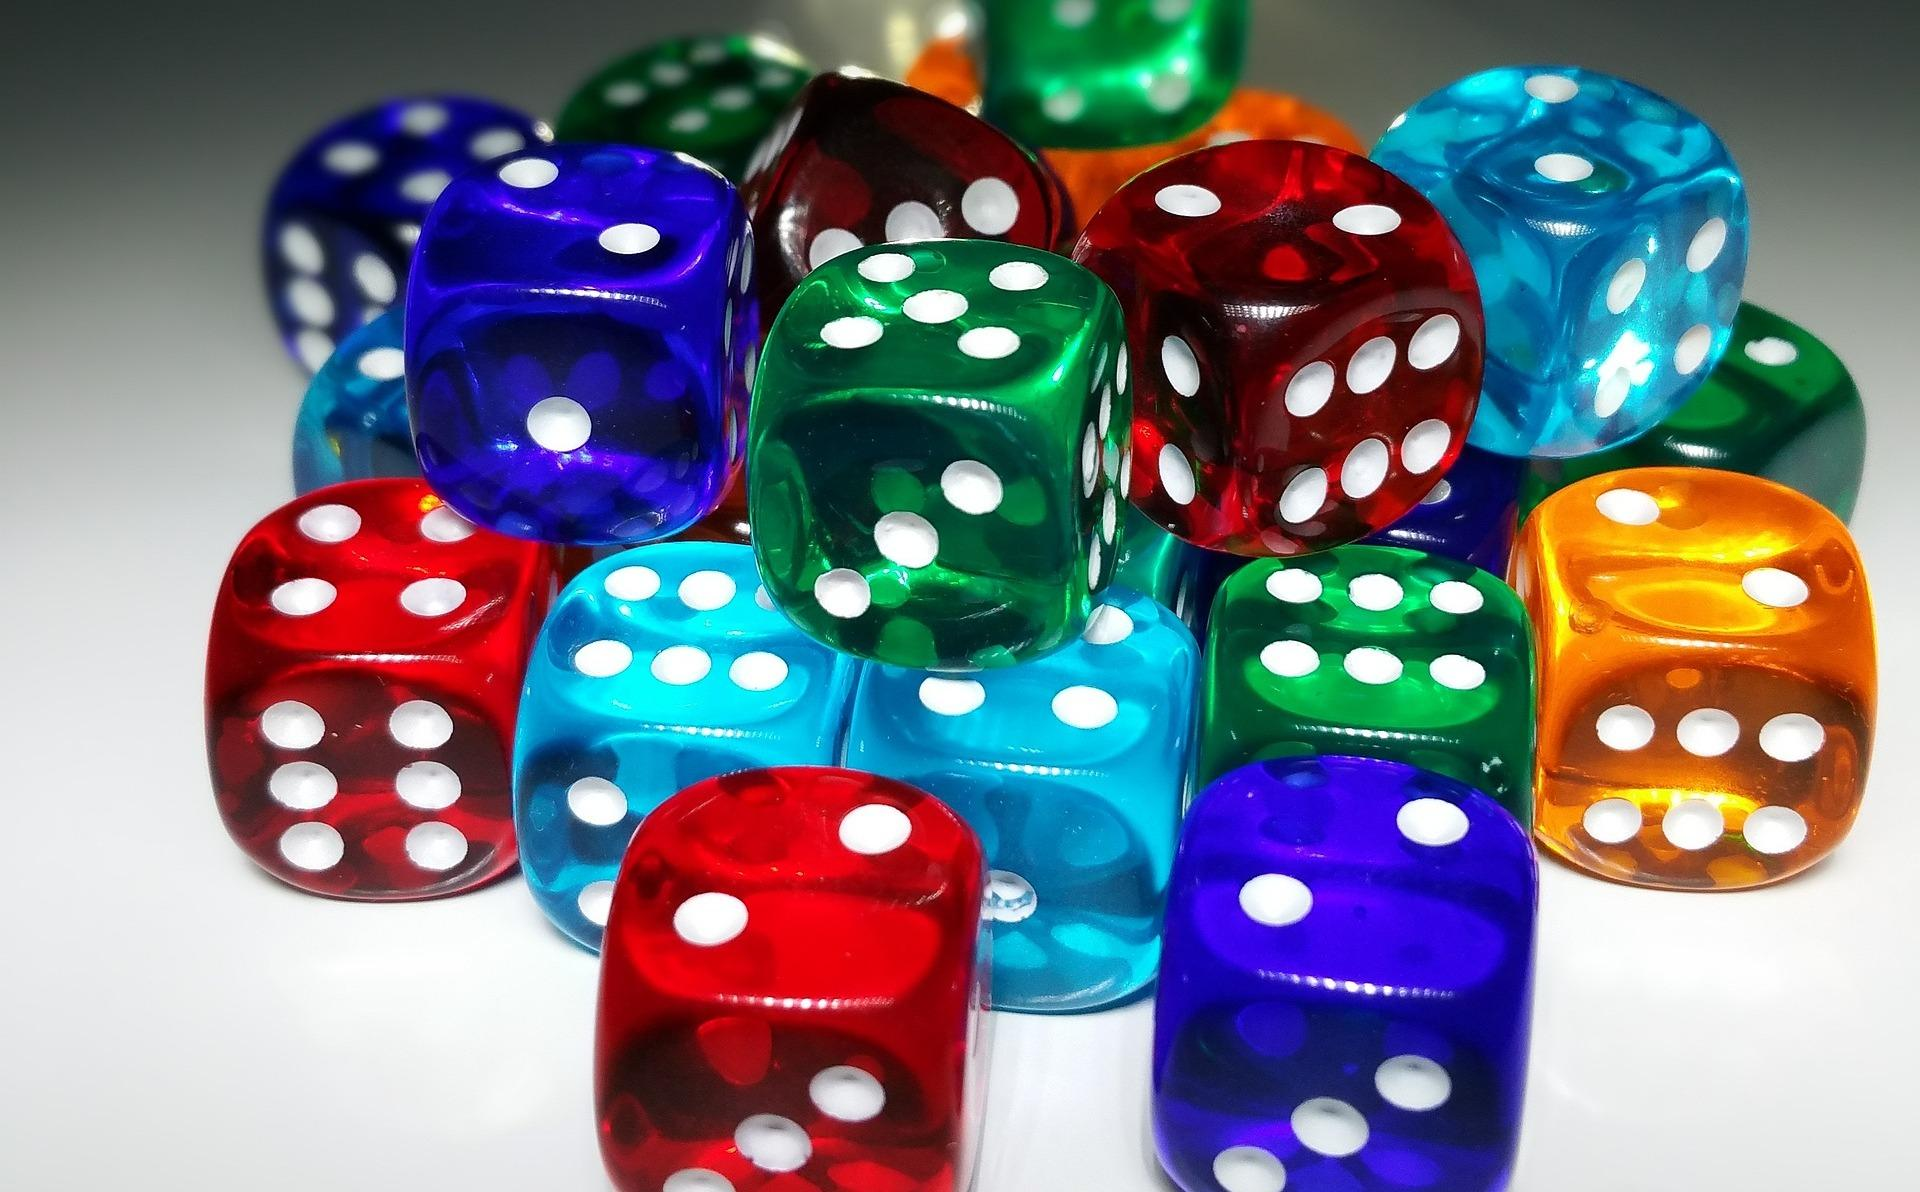 Sample in quantitative research - it is random like a pile of dice